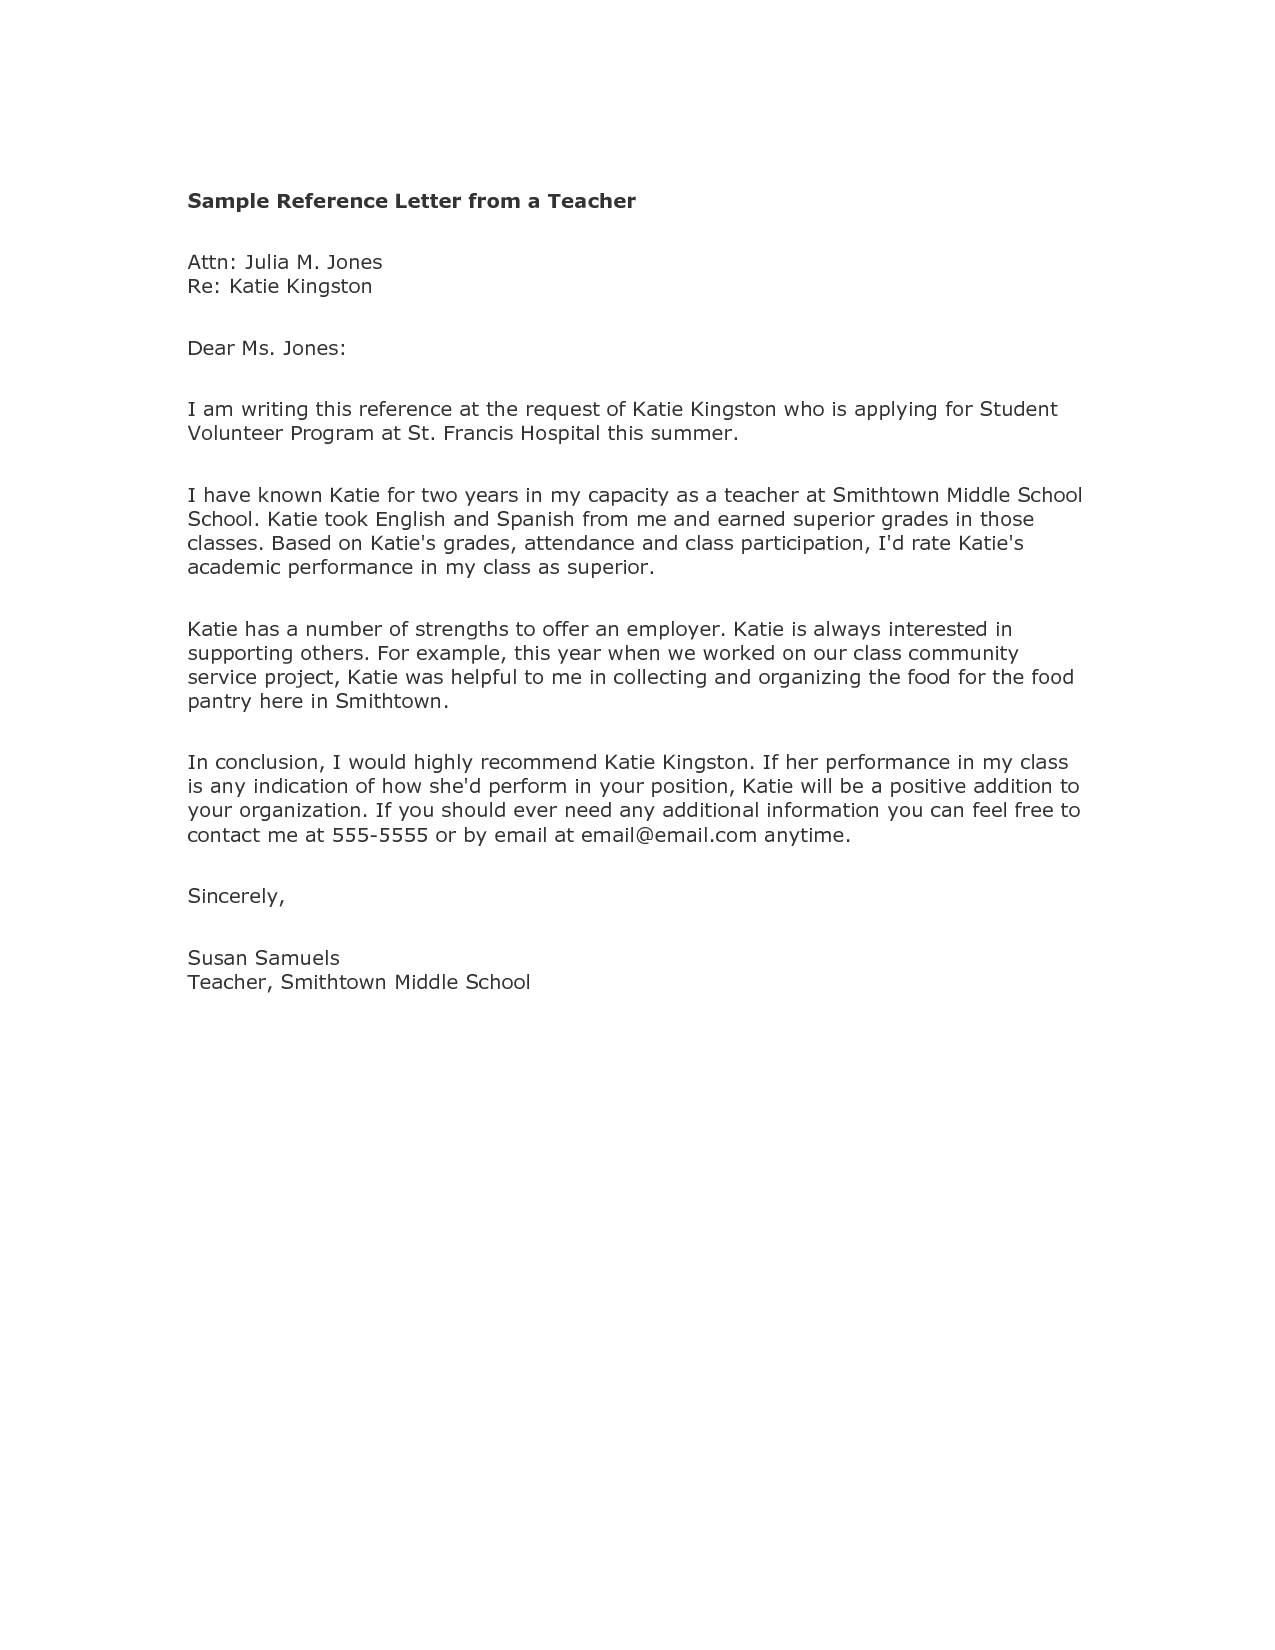 Recommendation letter sample for teacher from parent httpwww 7 teacher recommendation letter template sample of invoice sample of invoice altavistaventures Image collections